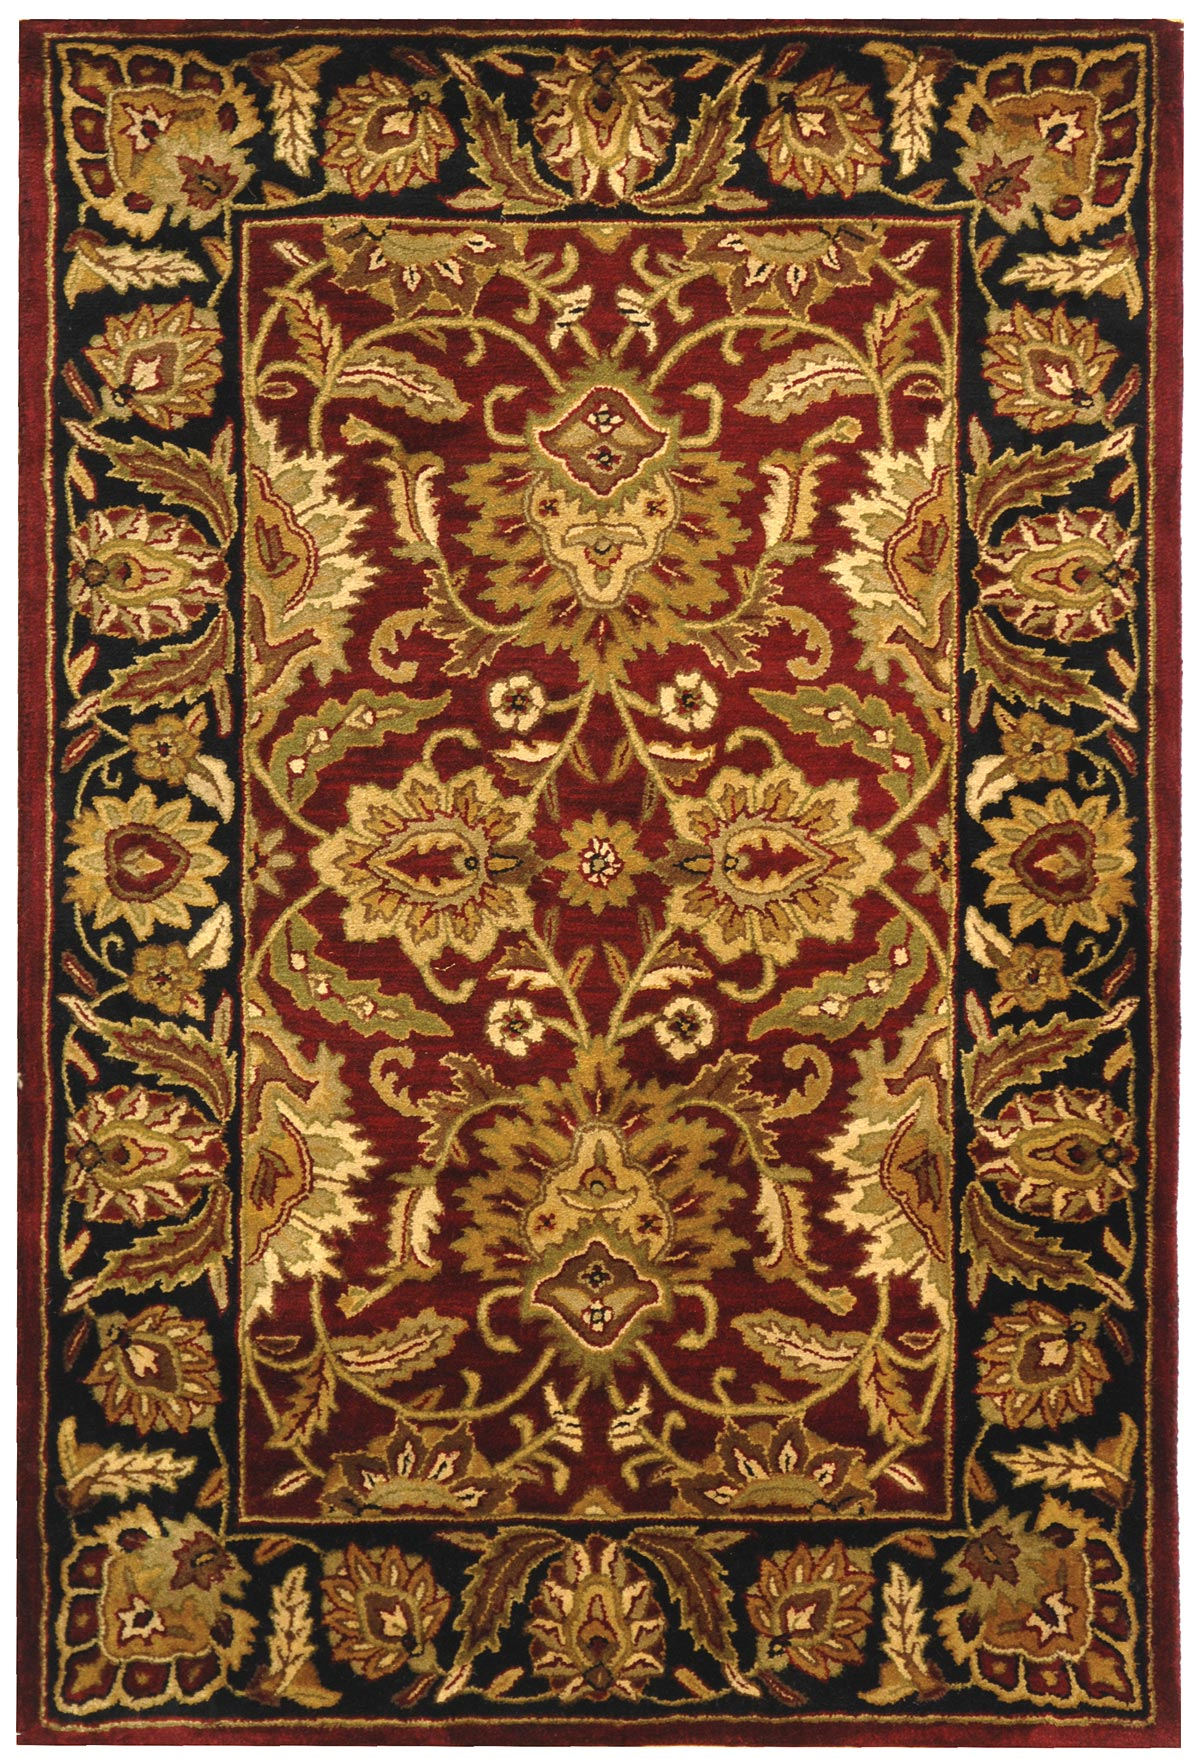 Rug Cl239b Classic Area Rugs By Safavieh